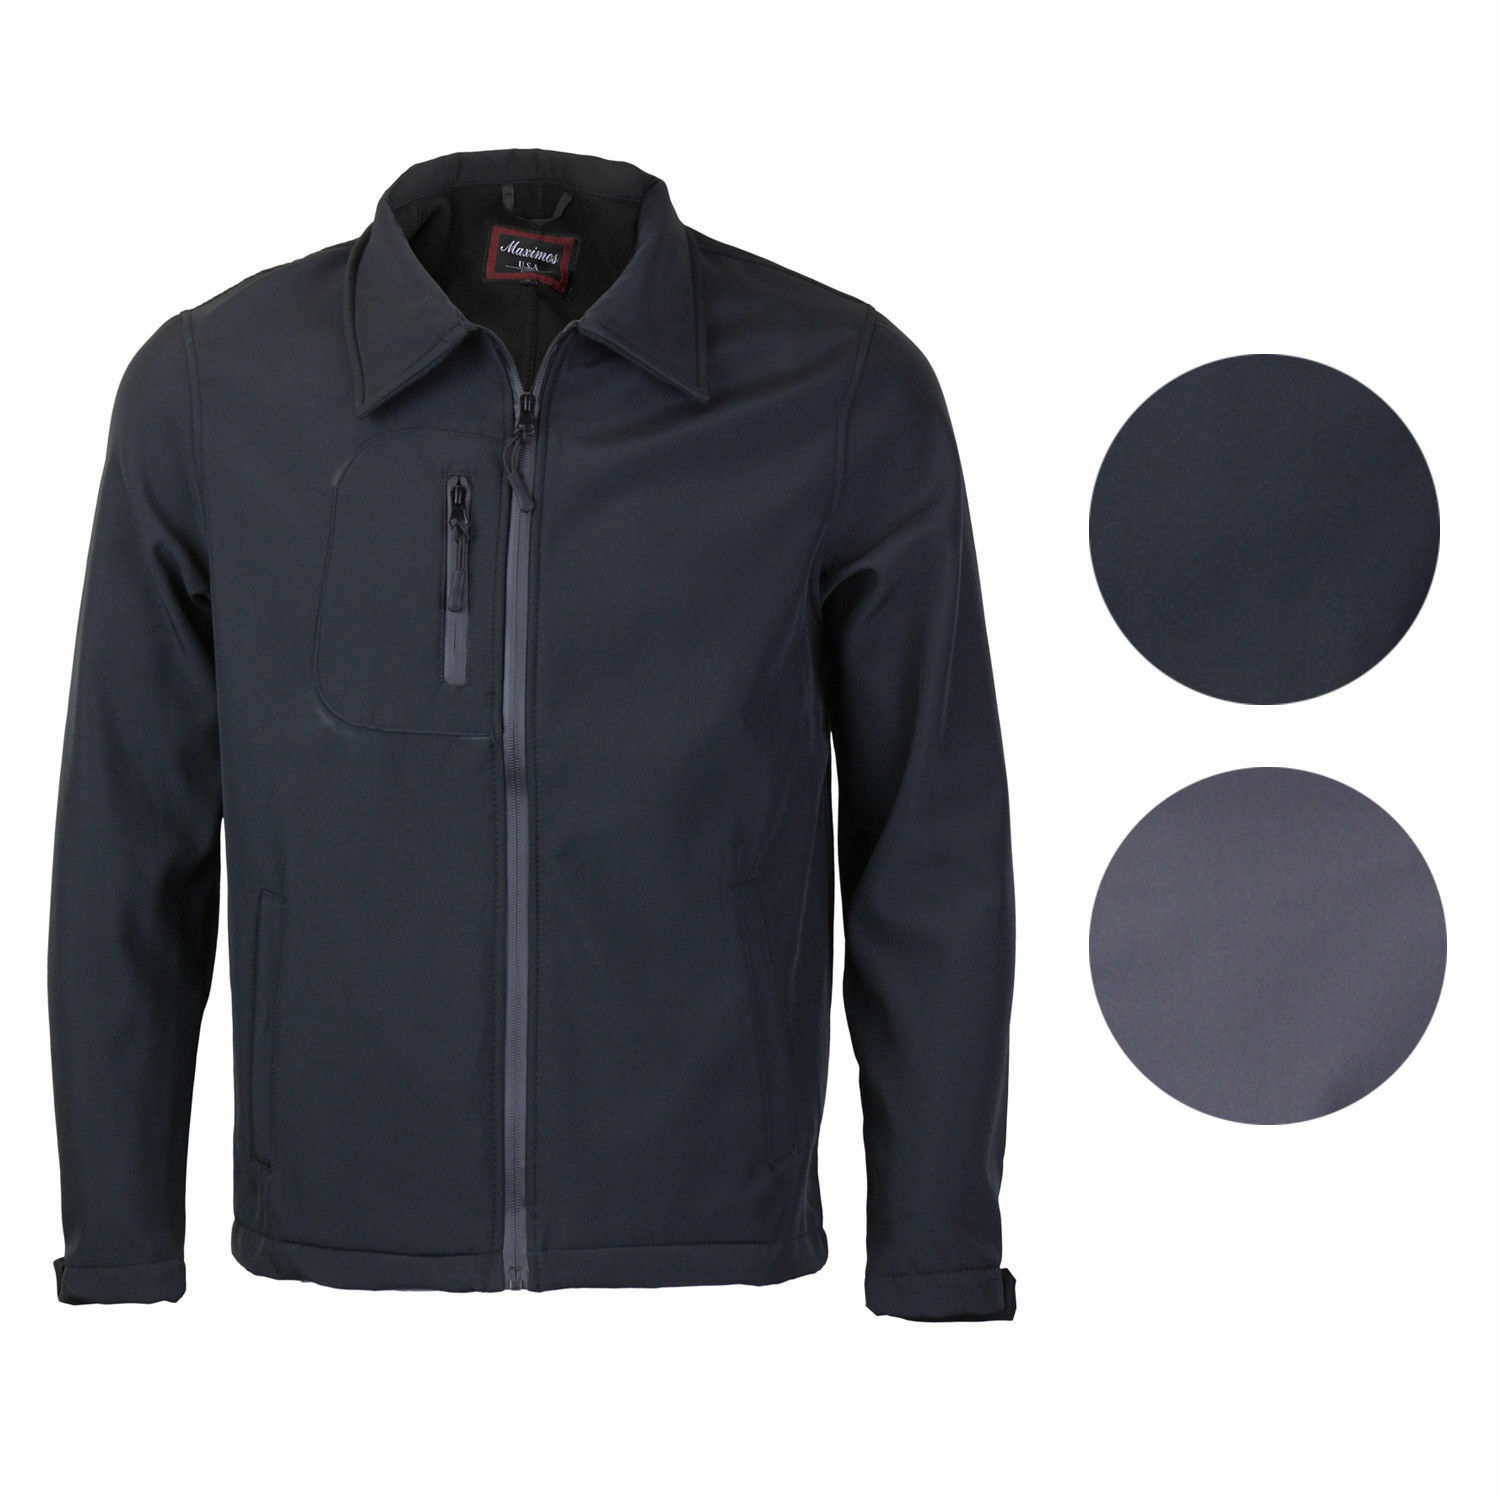 Men's Lightweight Athletic Water Resistant Windbreaker Slim Fit Jacket JERRY